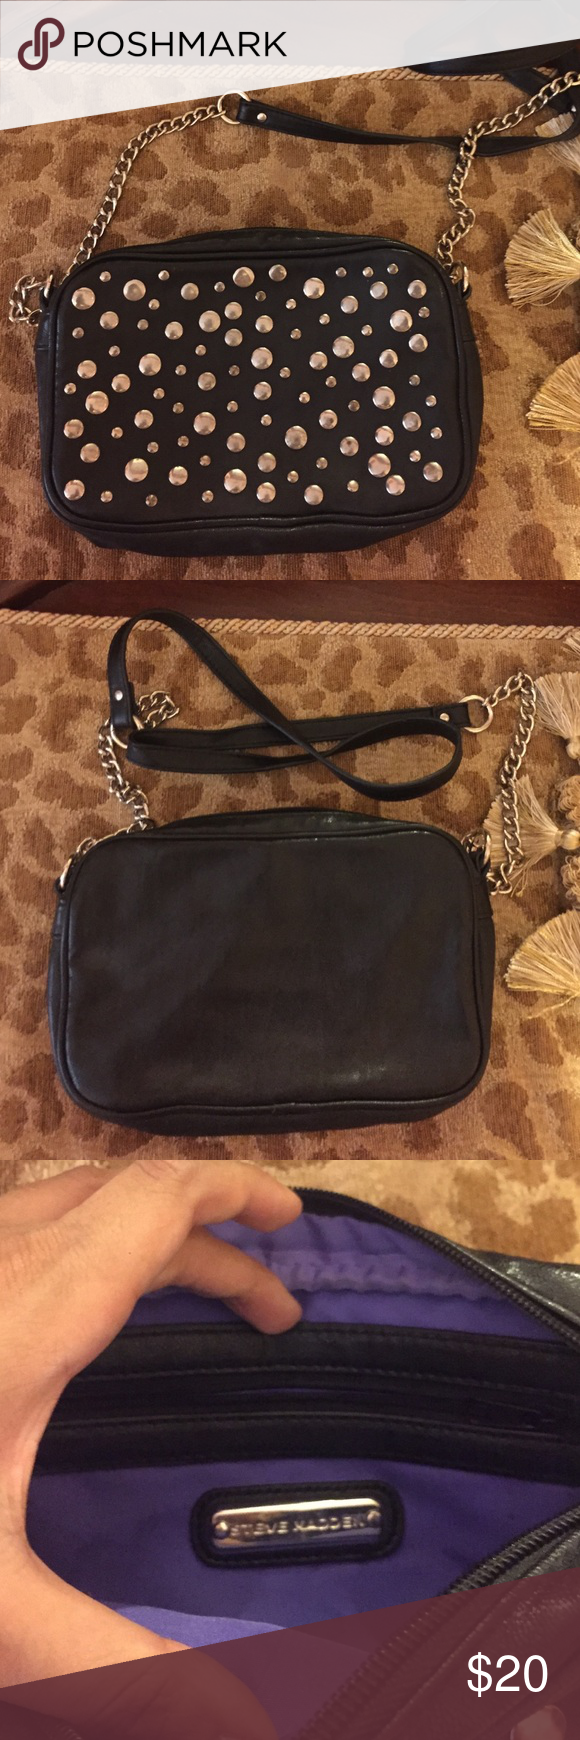 Excellent Condition Steve Madden Cross Body Studded Steve Madden cross body bag. Steve Madden Bags Crossbody Bags